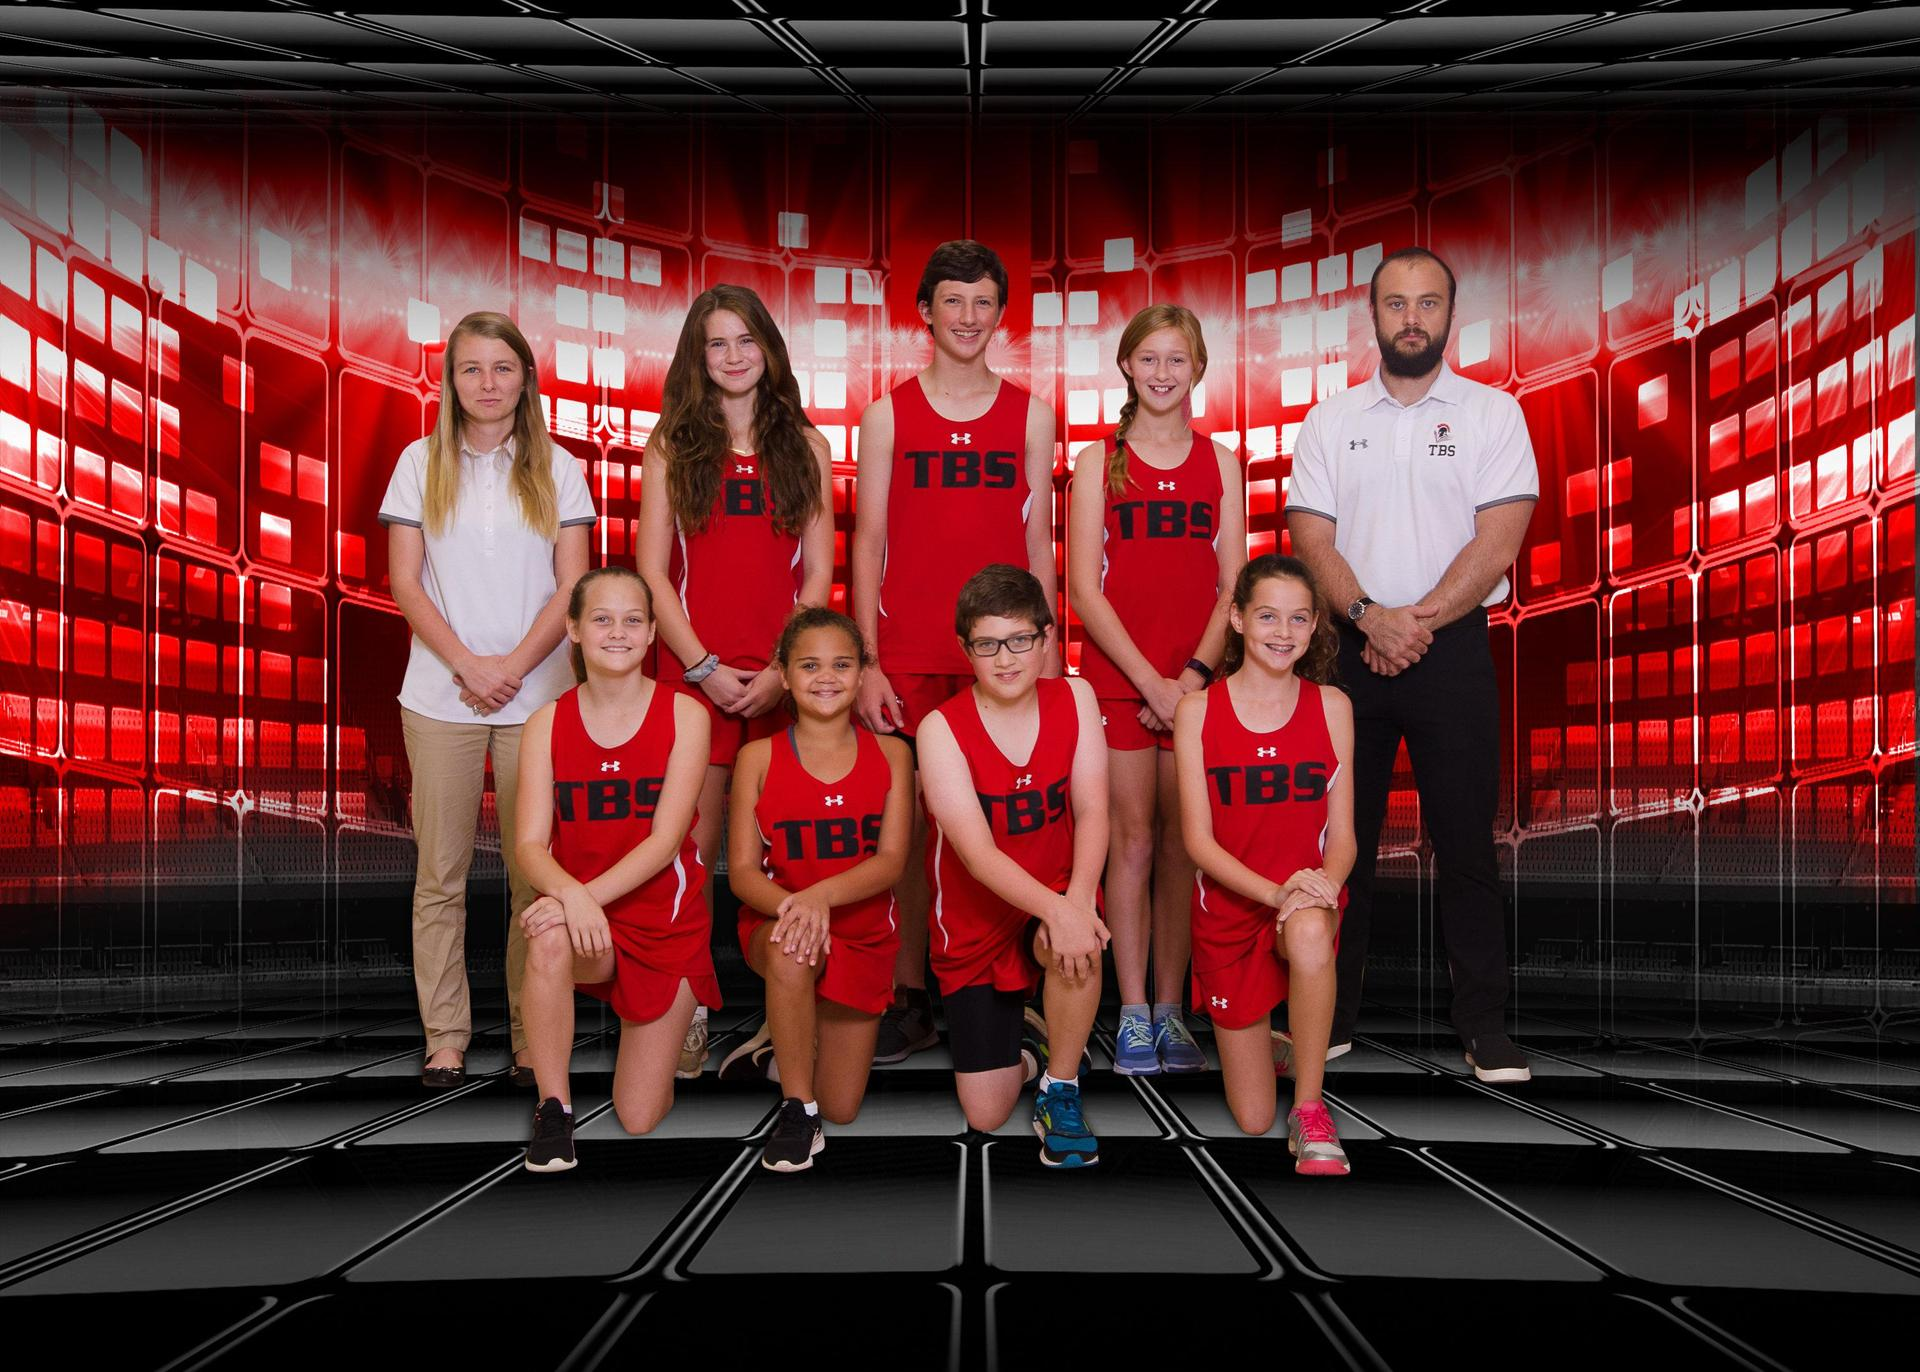 2018 Middle School Co-Ed Cross Country Team